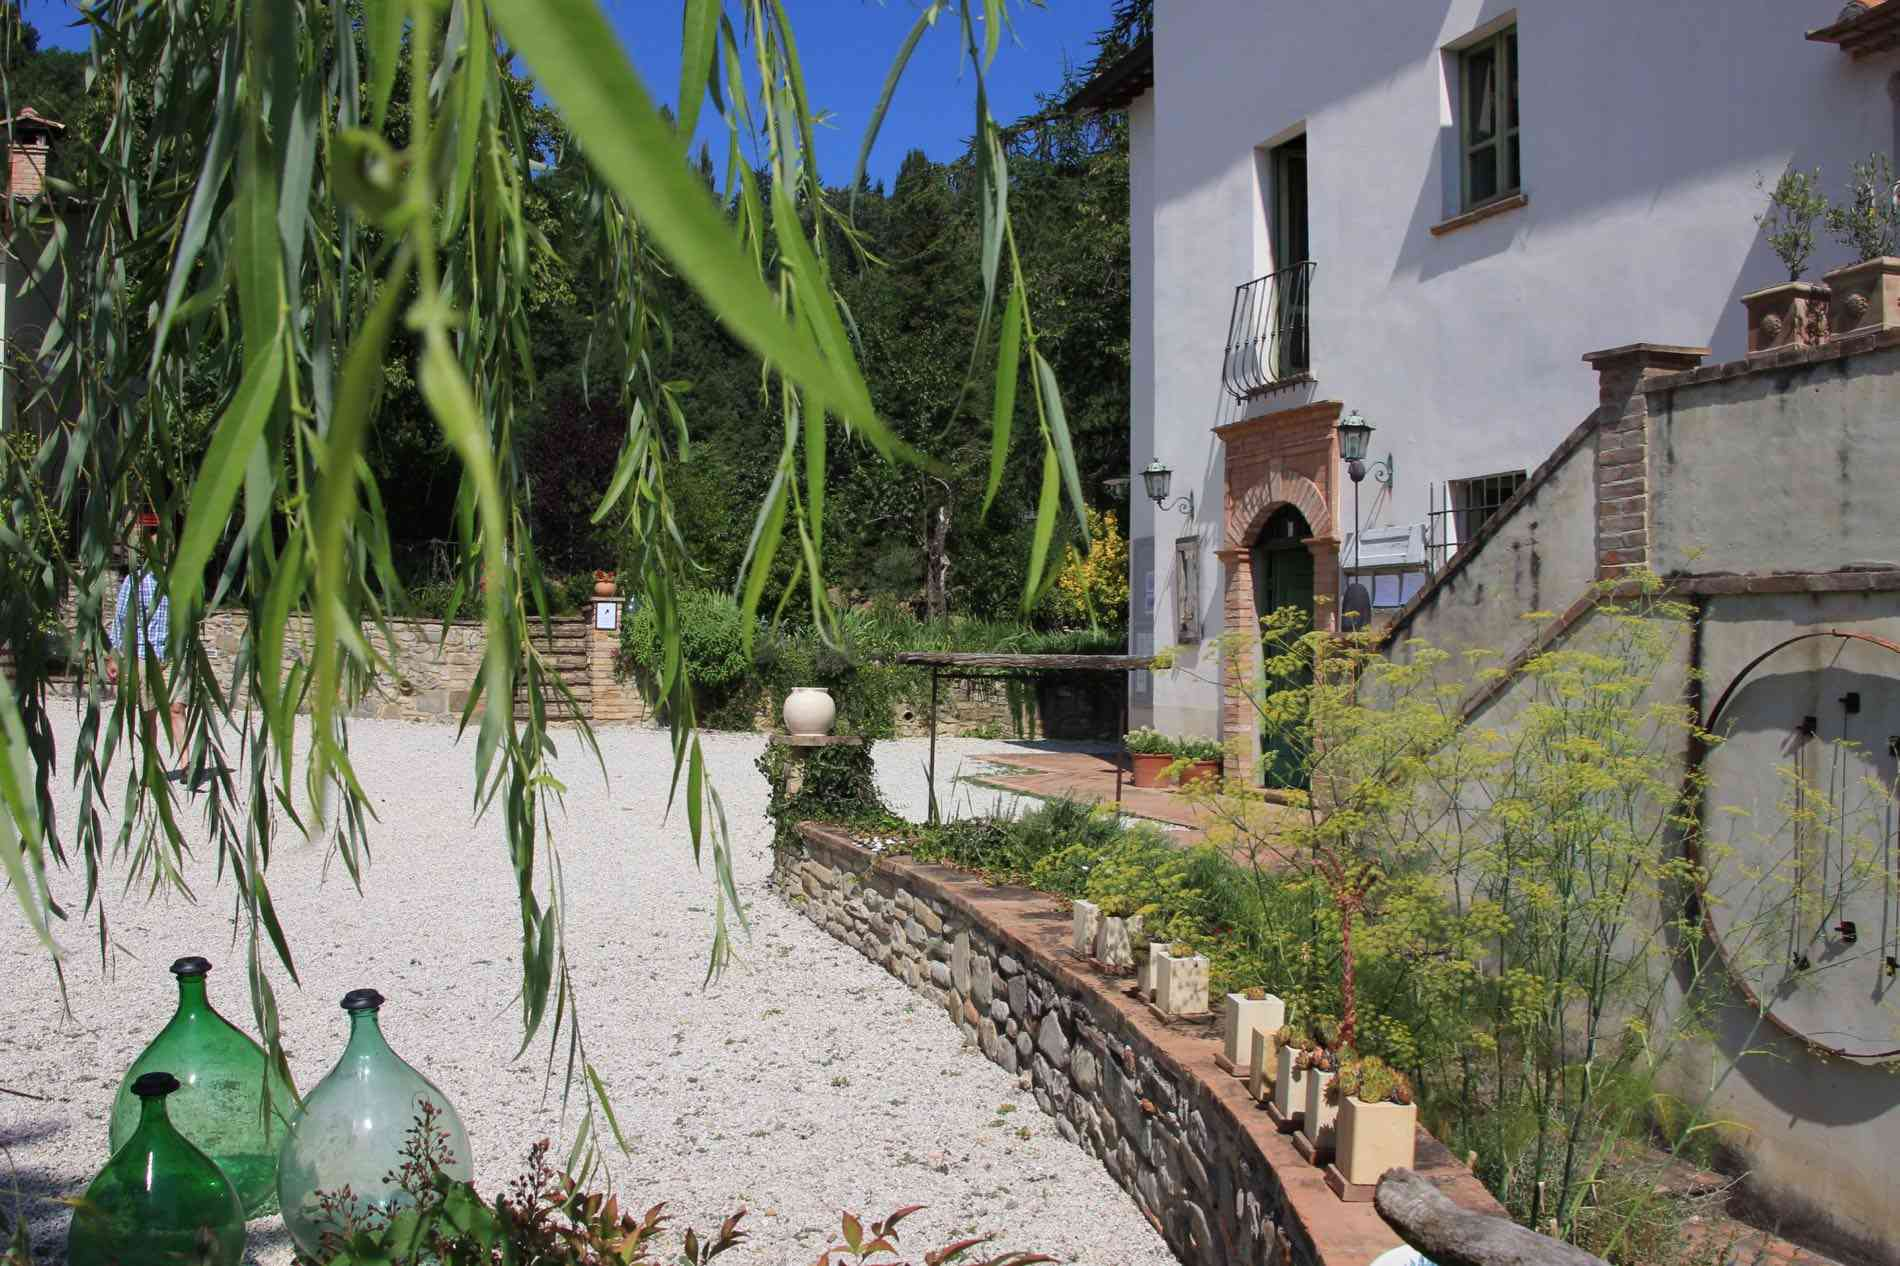 Countryhouse in Umbria with self-catering apartments